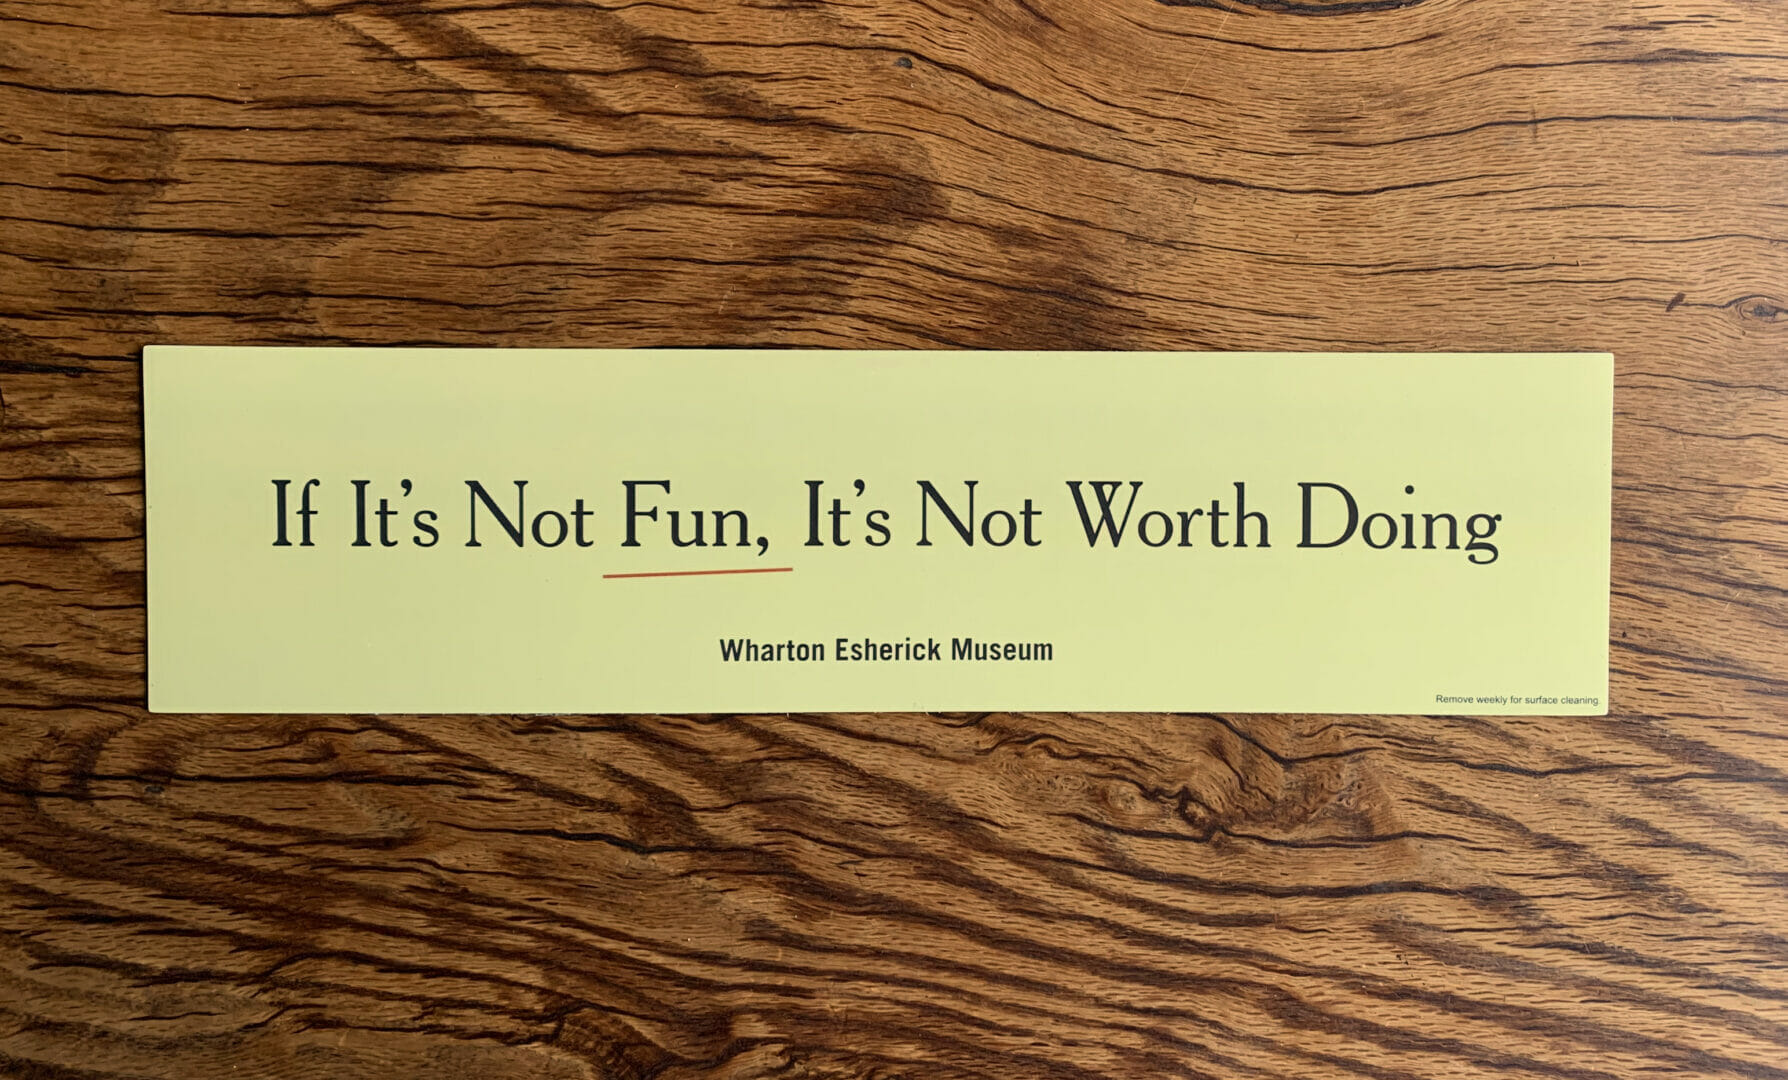 car bumber magnet with Esherick quote